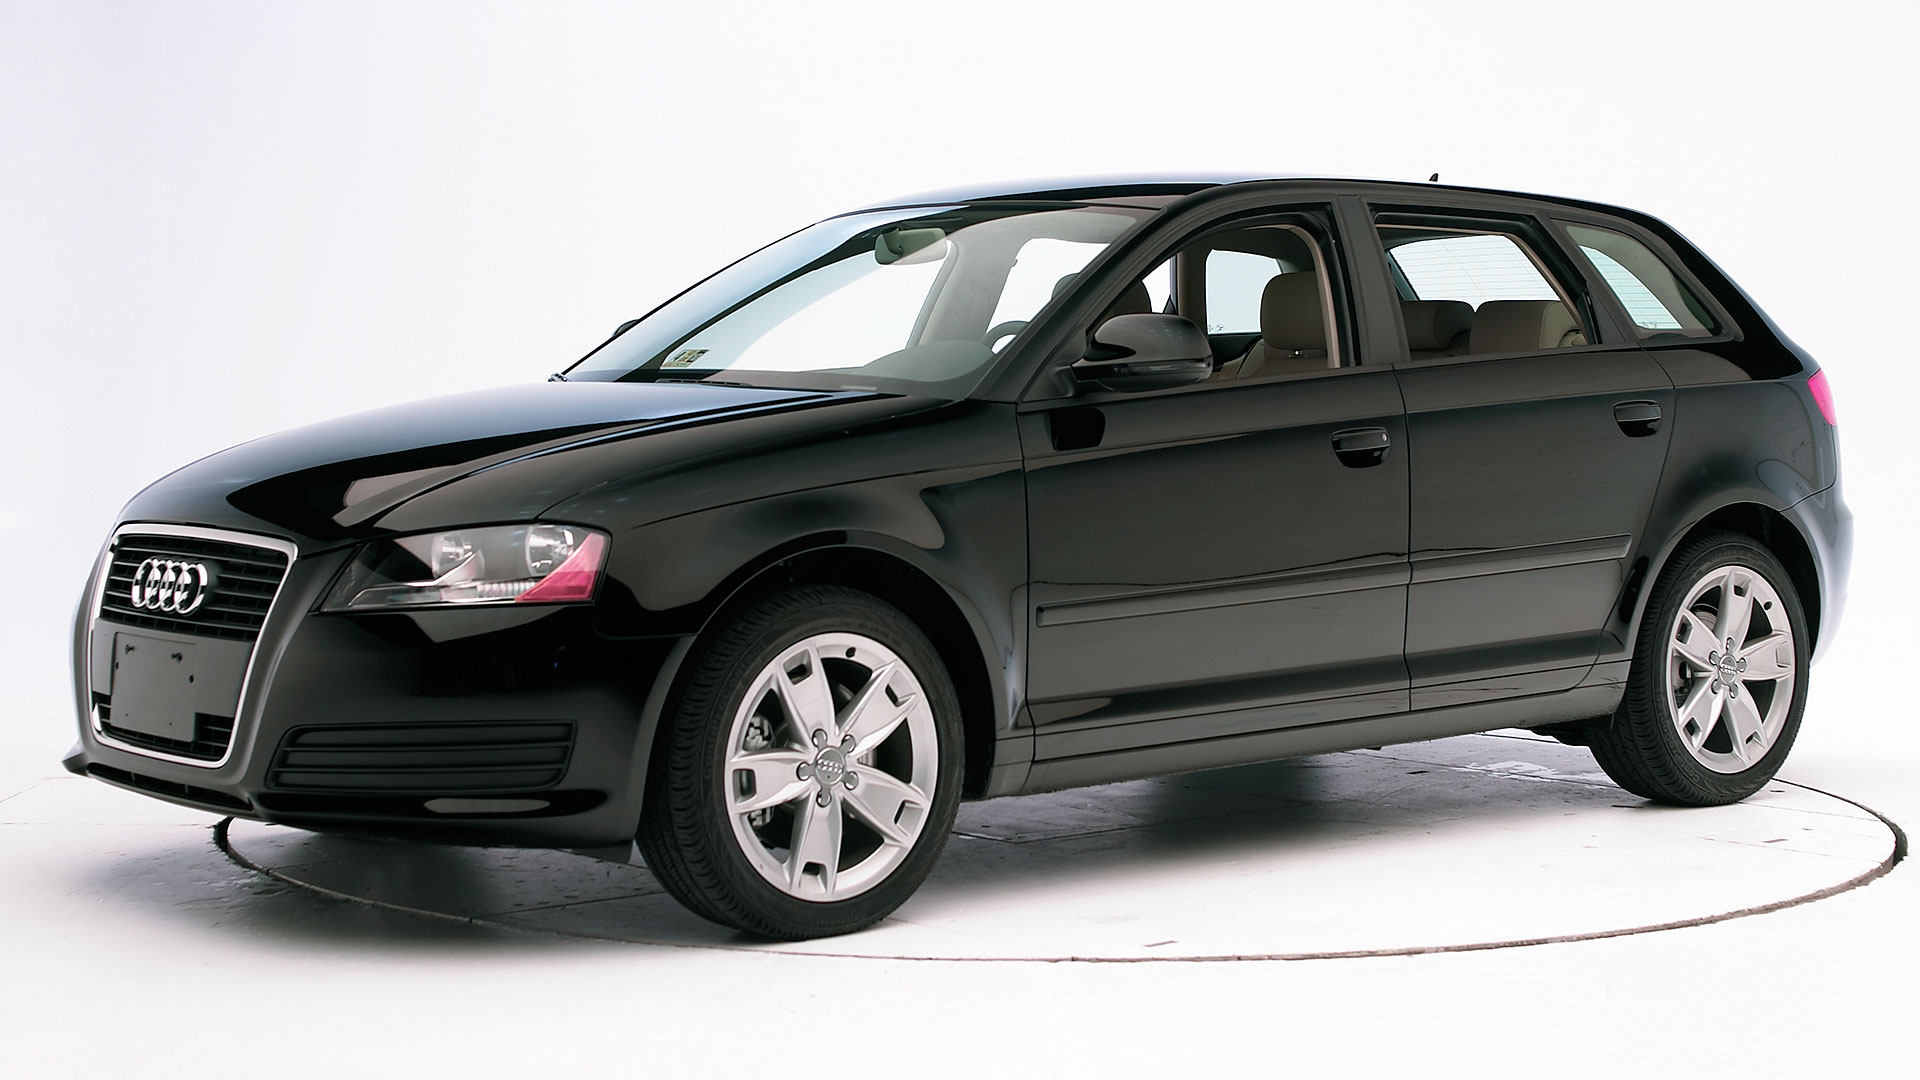 2010 Audi A3 4-door wagon